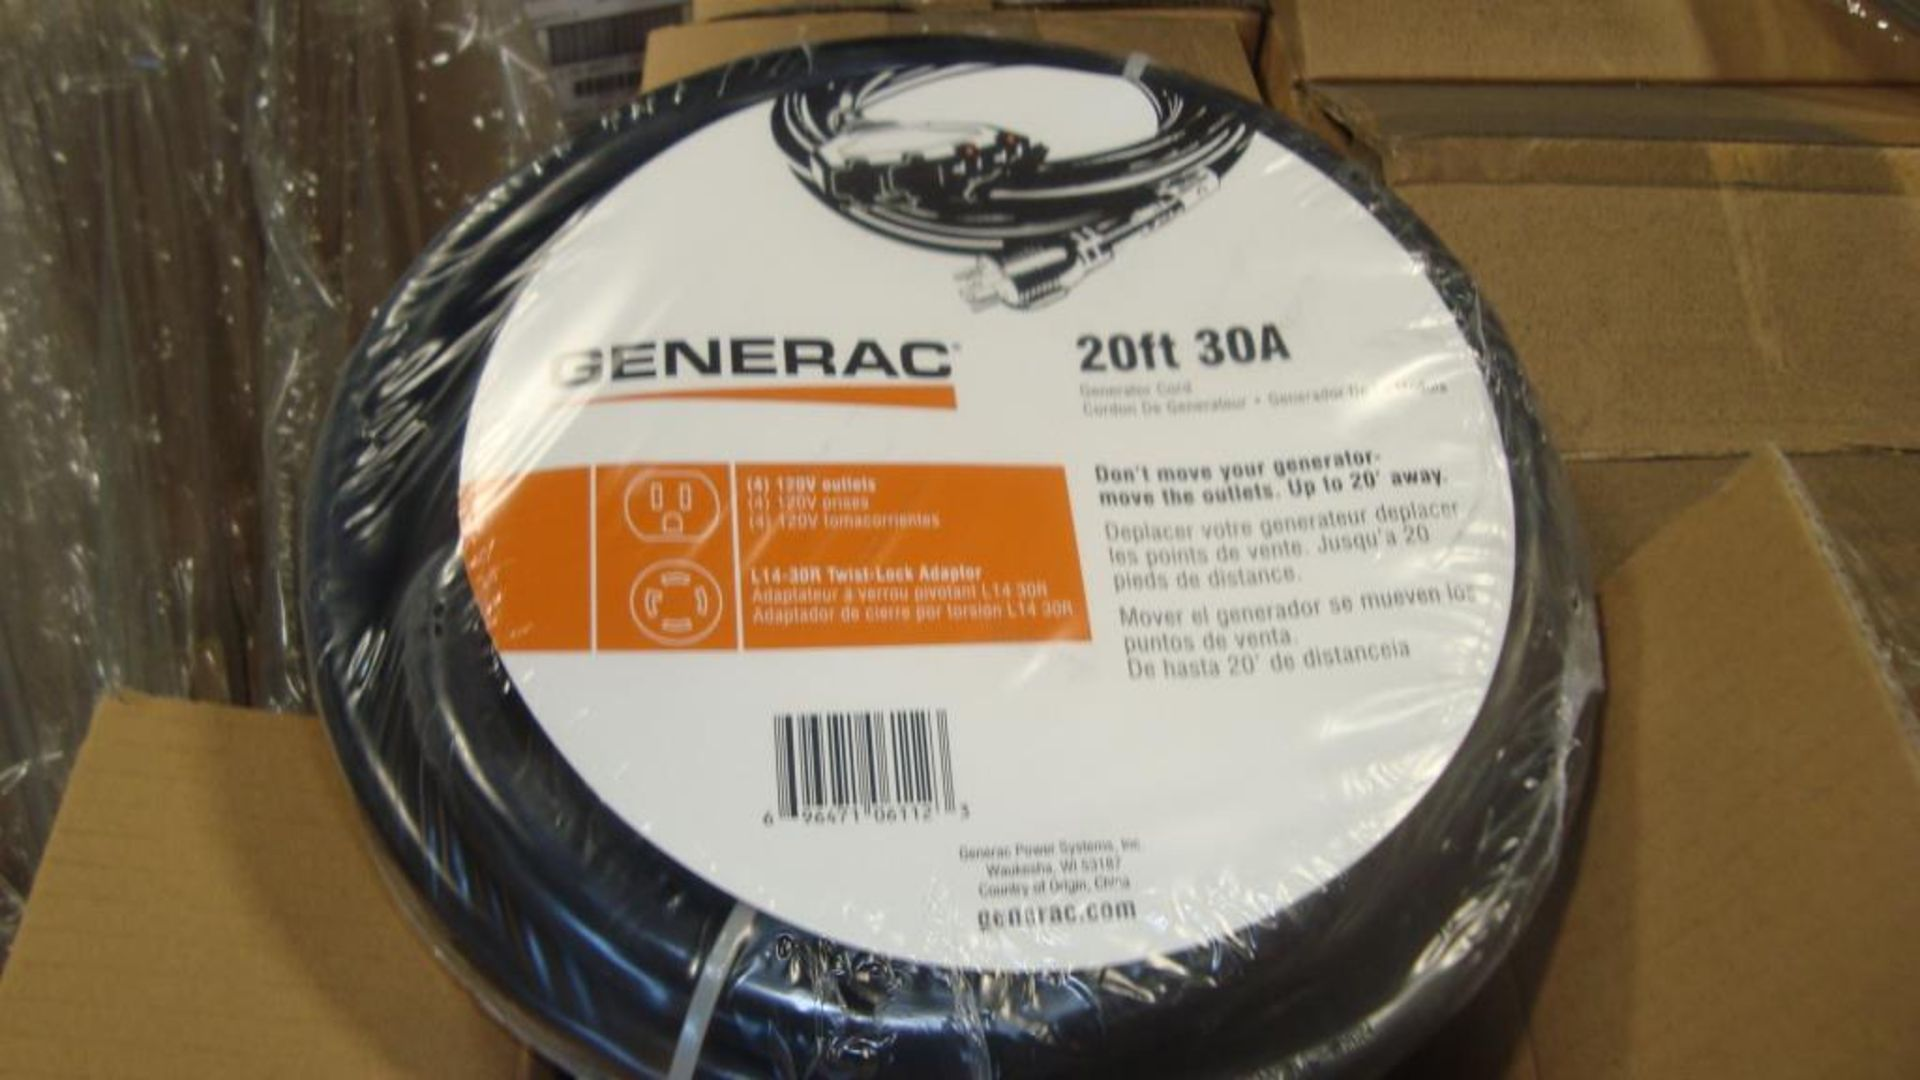 Extension Cords. Lot: 90 Total (45 Boxes - 2 ea.) Generac pn# 0061121-1 20ft, 30A Power Distribution - Image 2 of 8